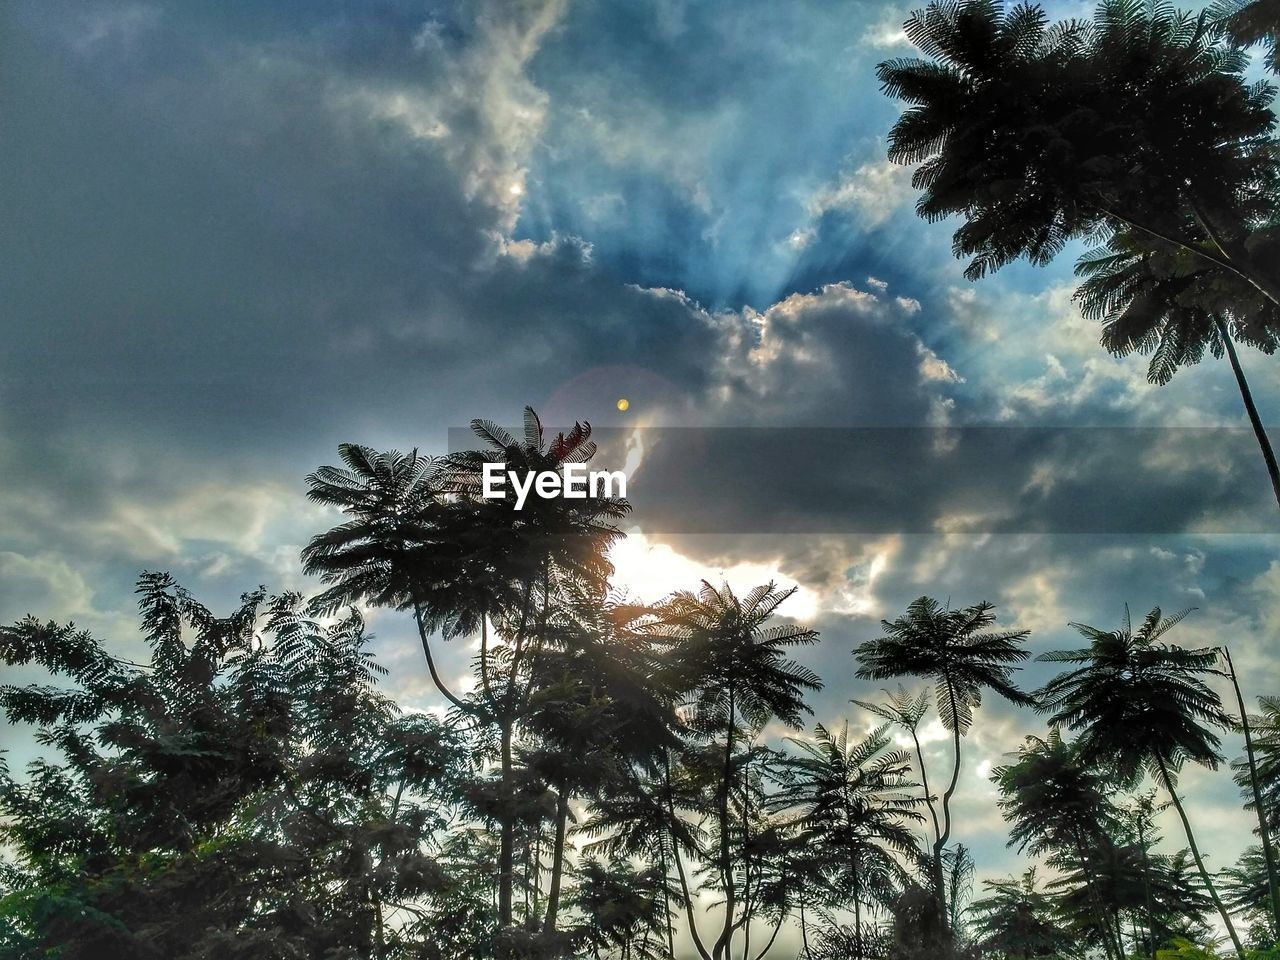 palm tree, low angle view, tree, sky, cloud - sky, day, no people, nature, growth, outdoors, beauty in nature